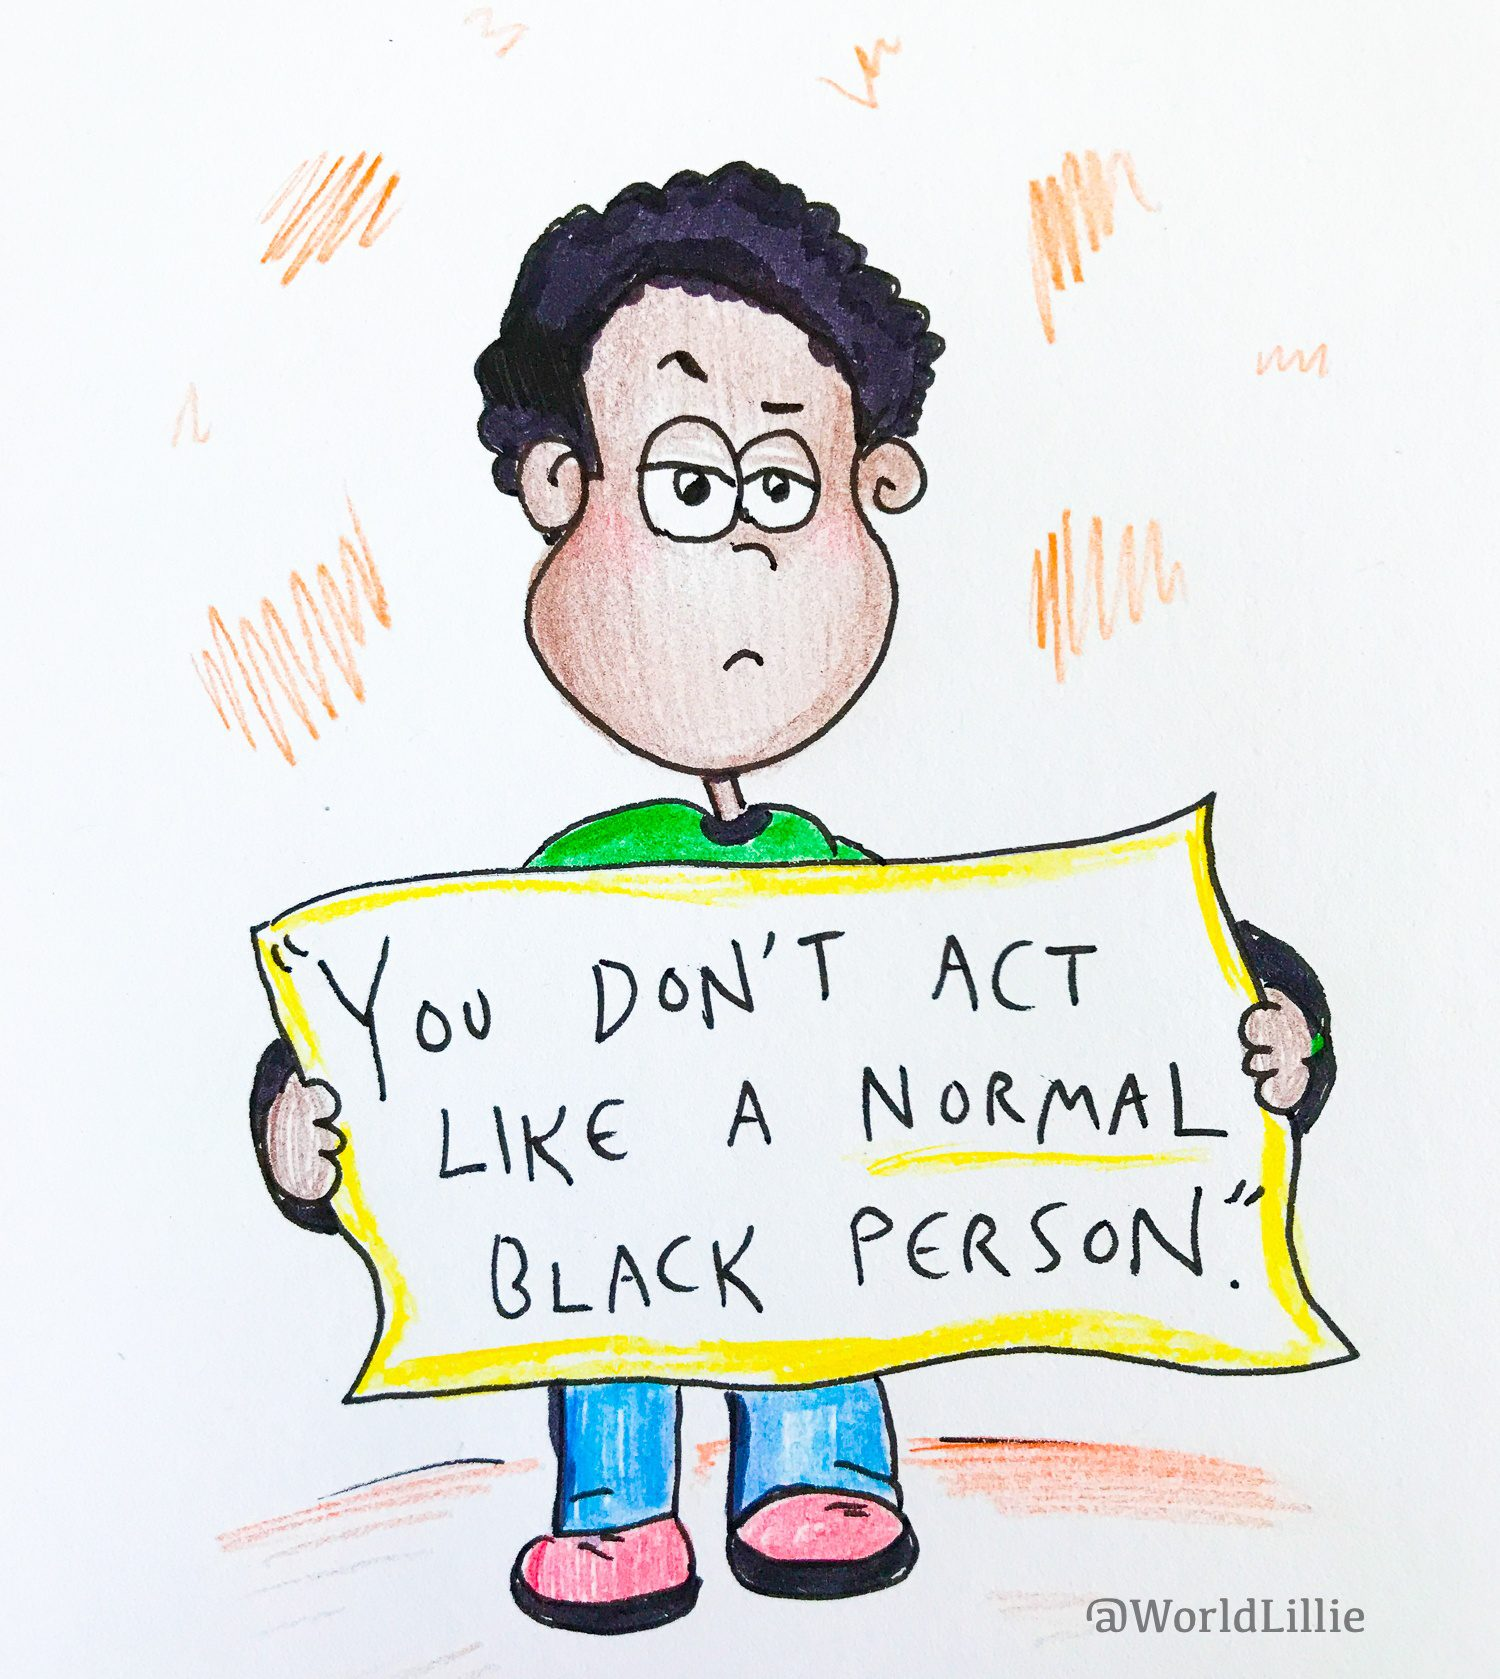 """Microaggressions: You don't act like a normal Black person"""""""